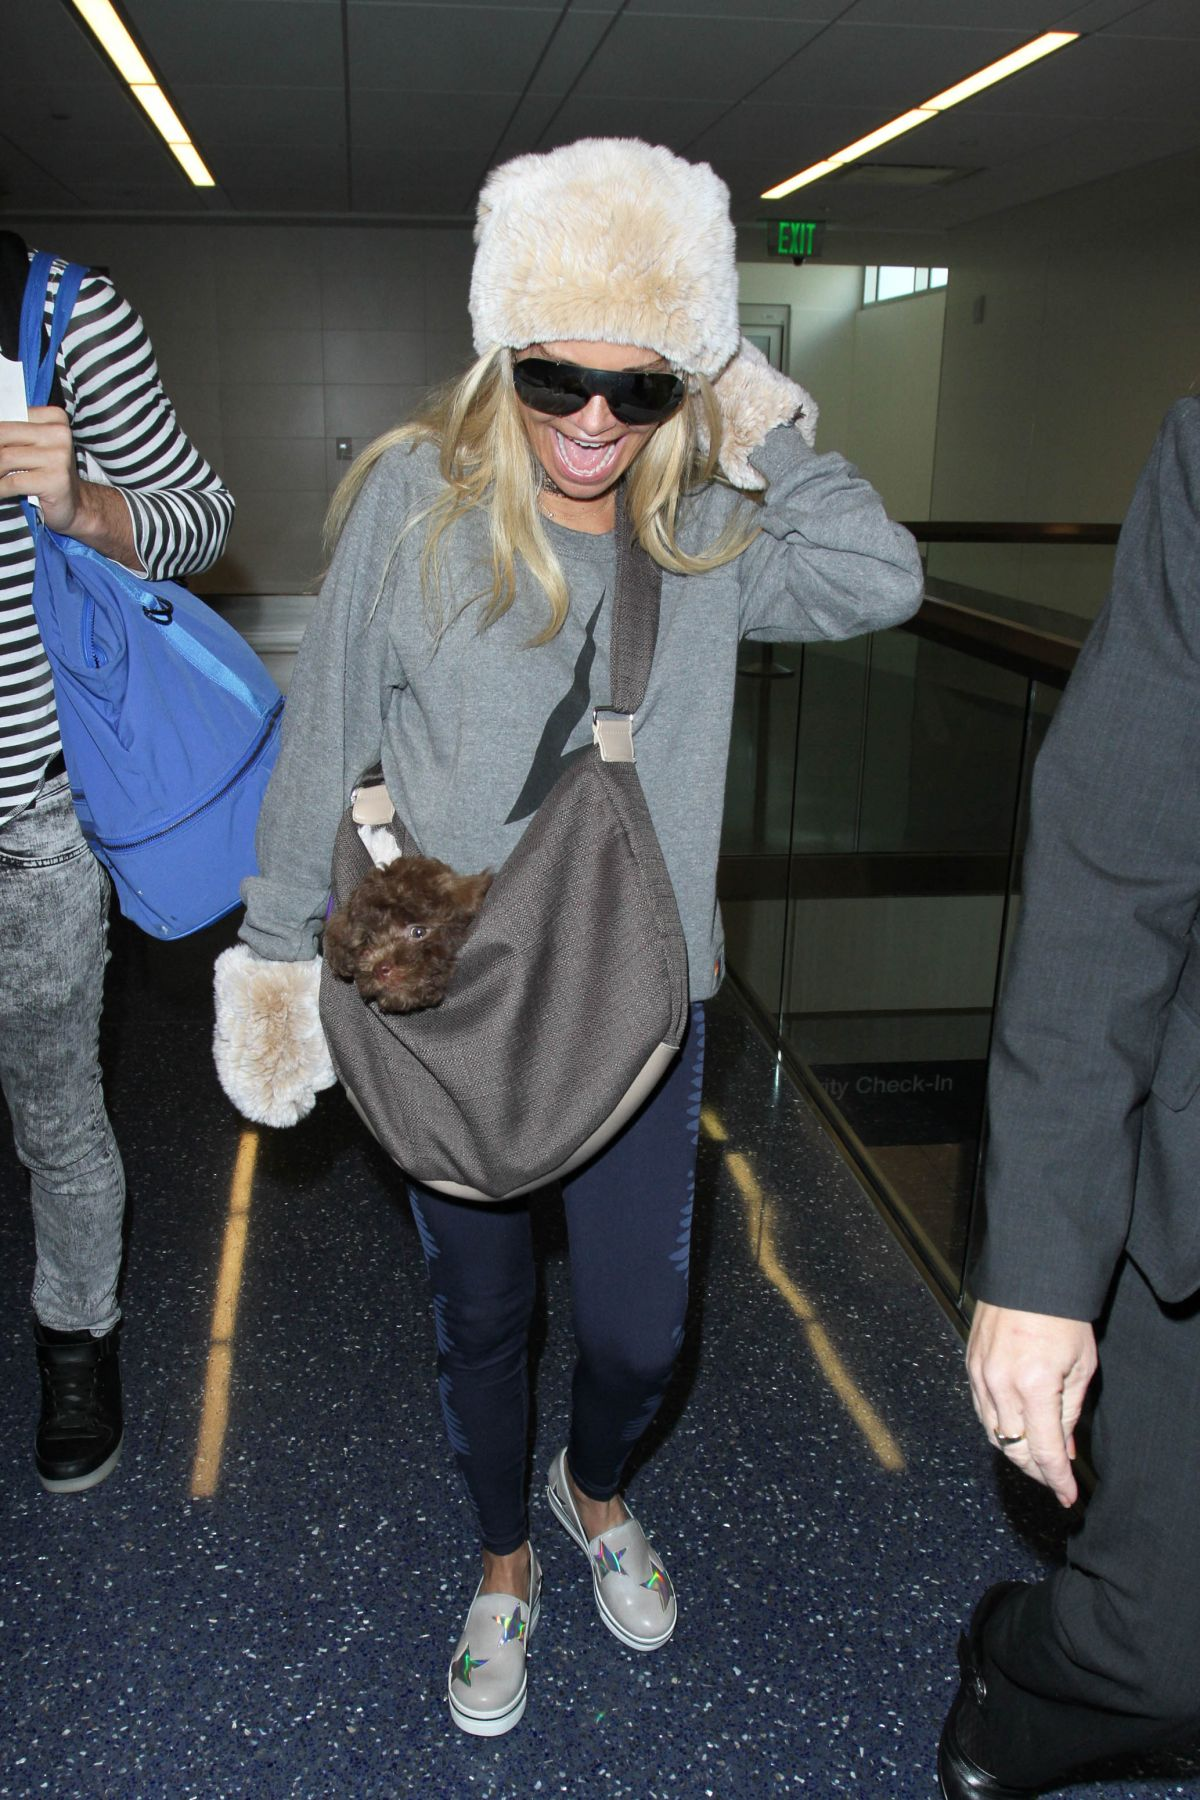 KRISTIN CHENOWETH at LAX Airport in Los Angeles 01/13/2017